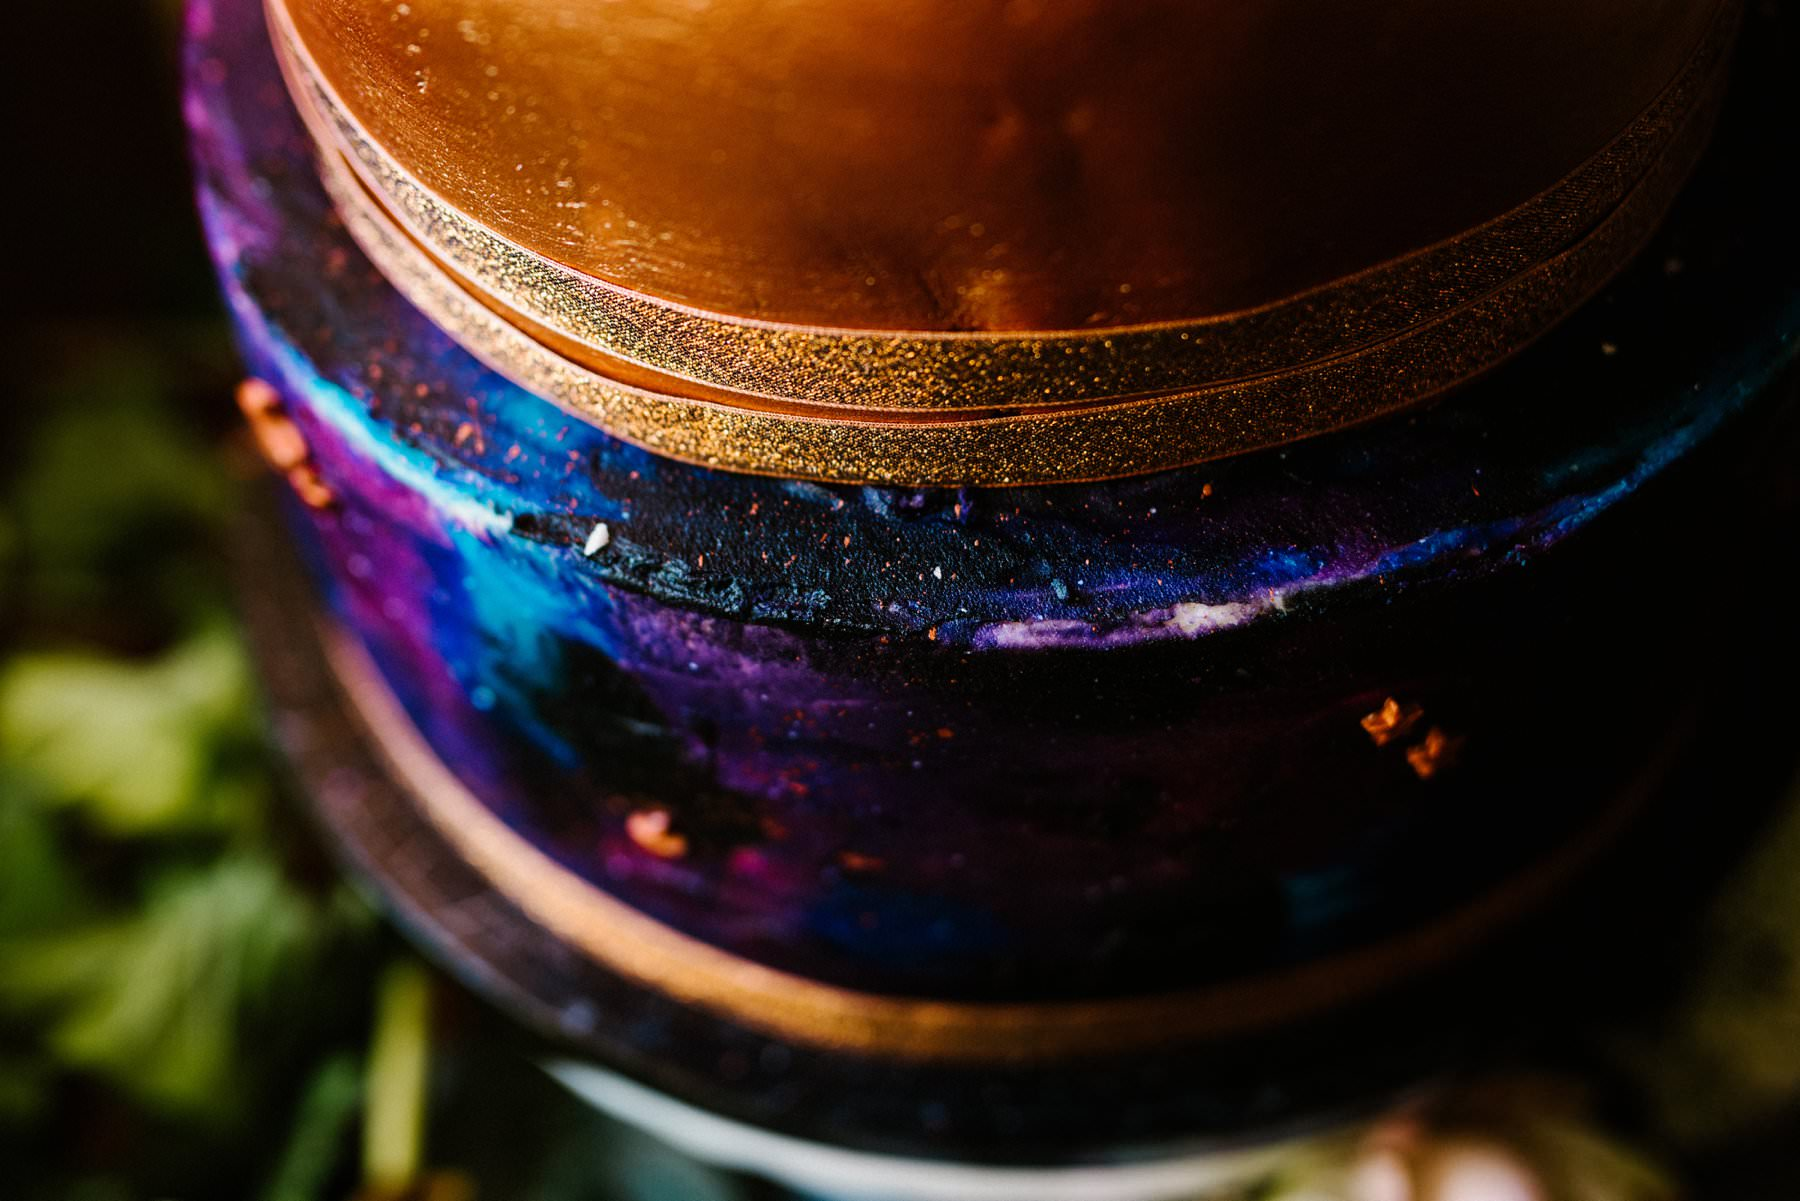 close up of galaxy themed icing for wedding cake